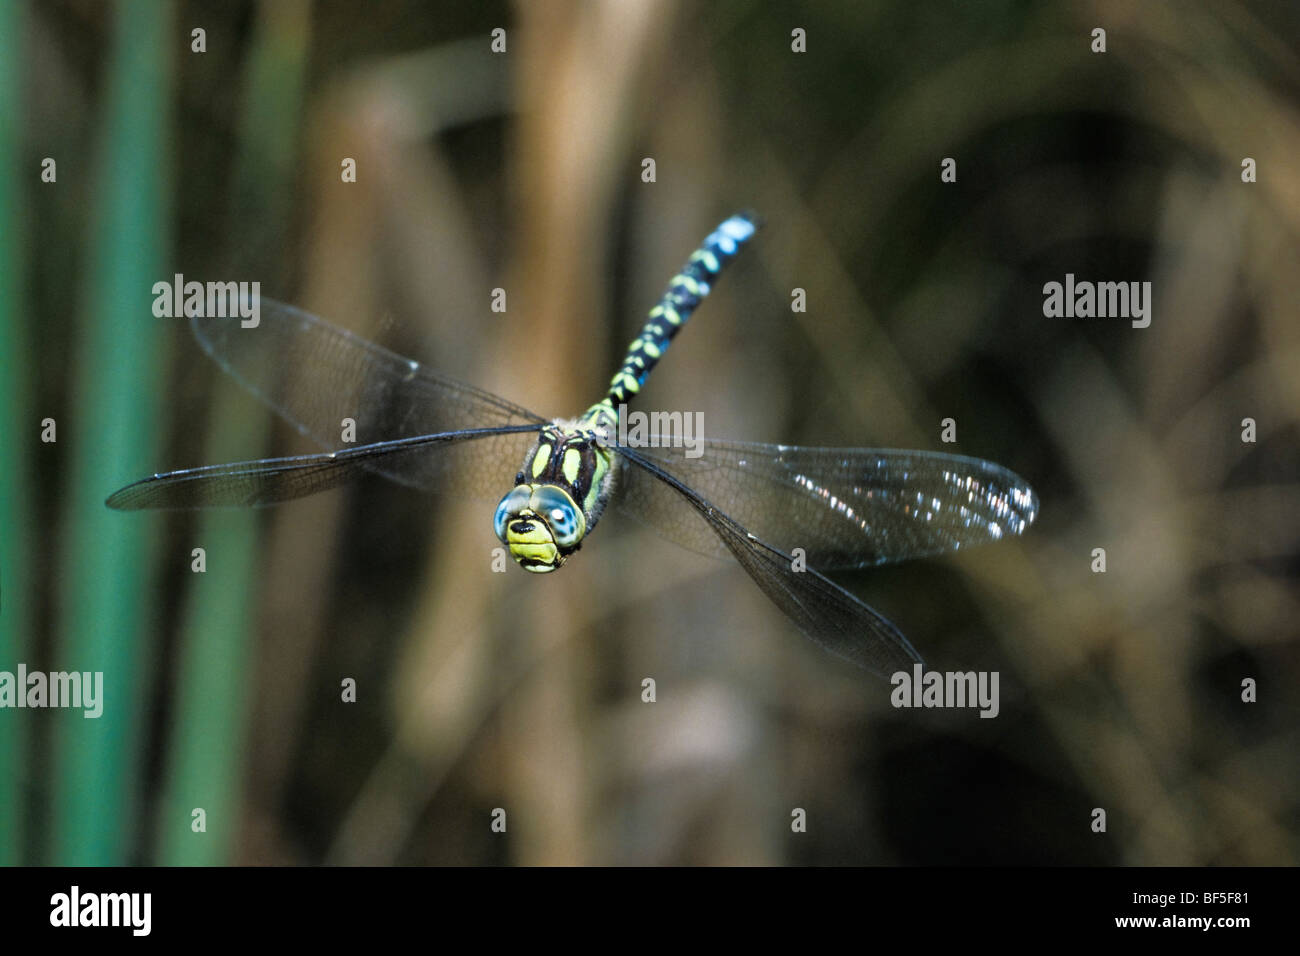 Dragonfly (Aeshna cyanea) hovering - Stock Image